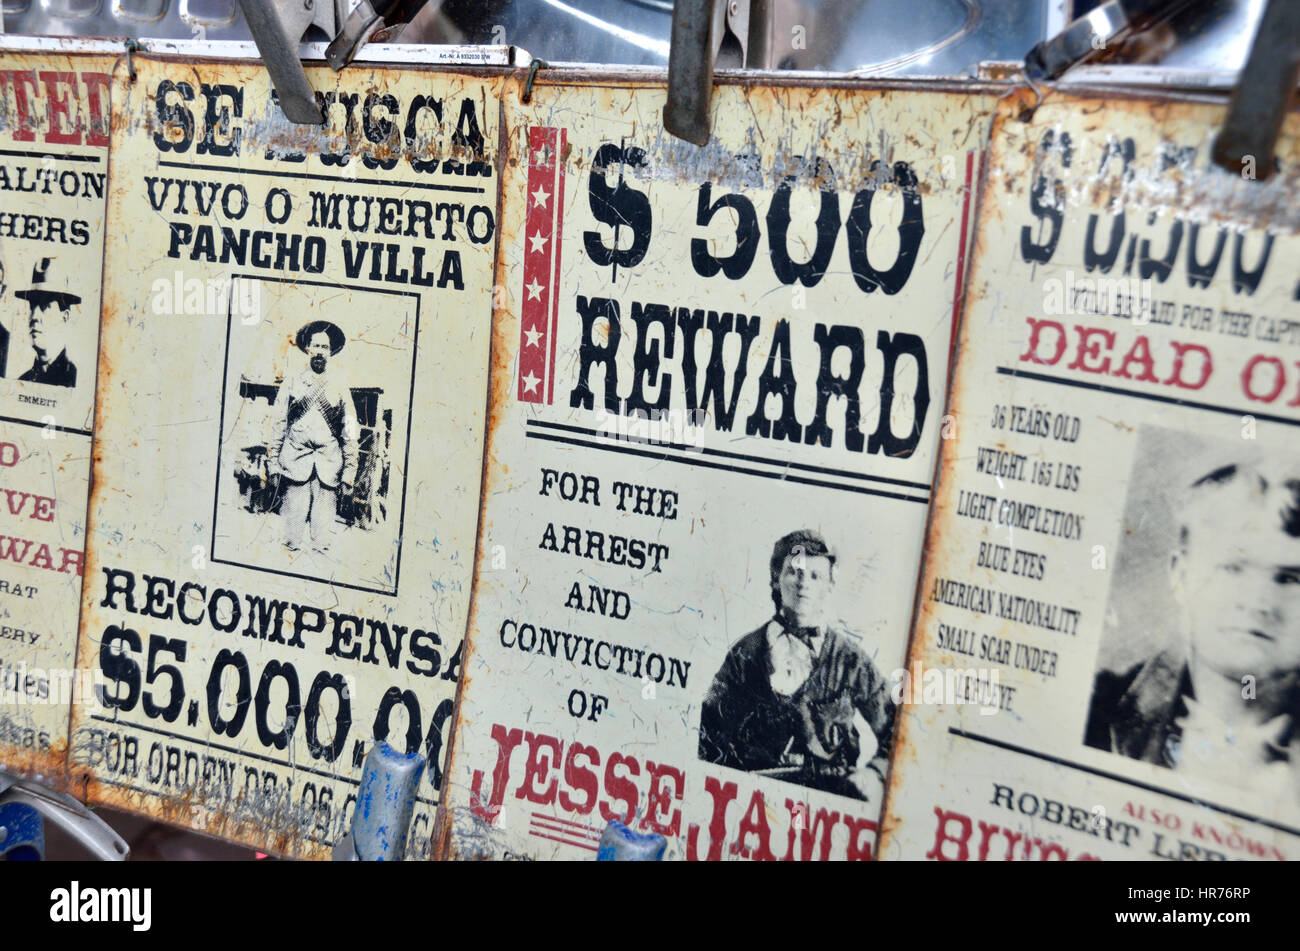 Bounty reward signs from the wild west. - Stock Image